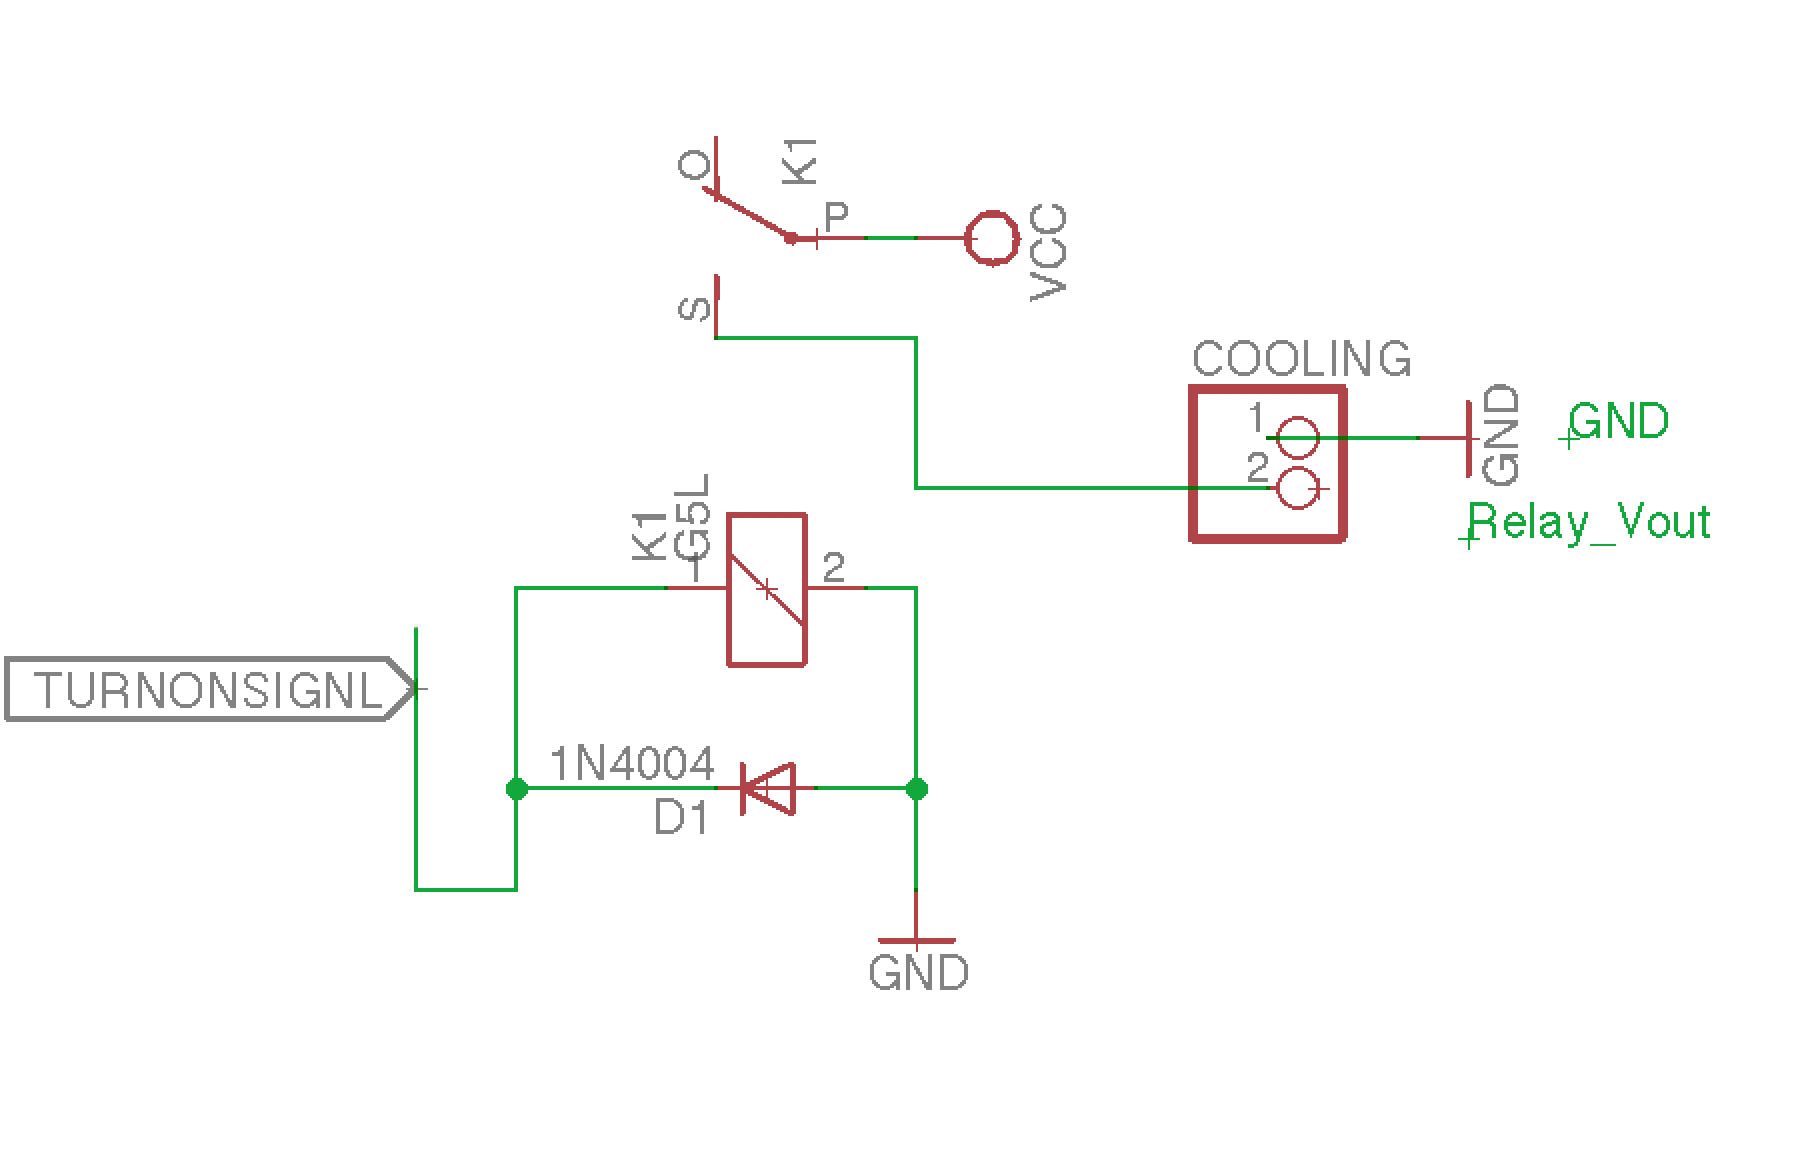 hight resolution of my current relay schematic